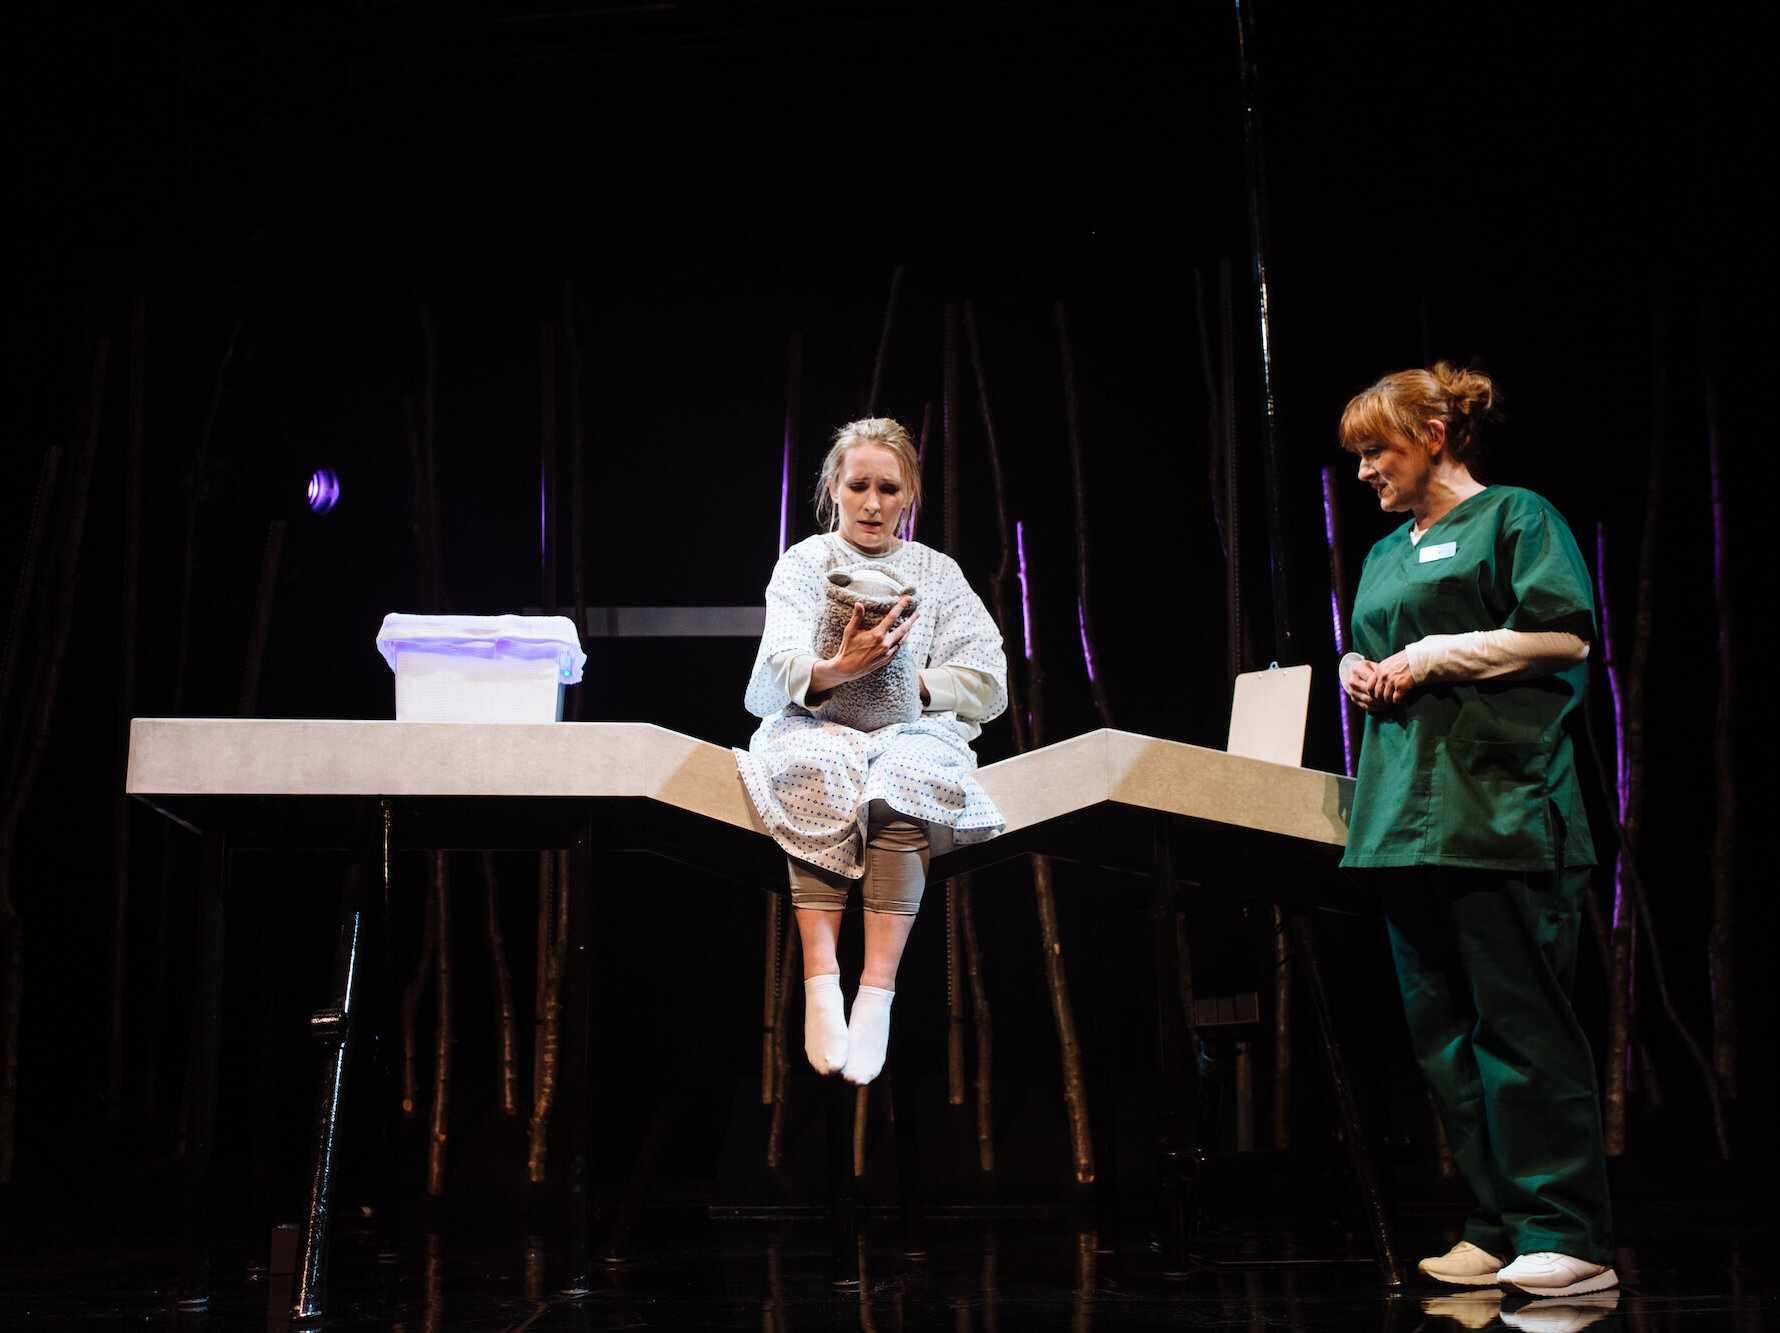 Hope and Joy production image showing a woman in green scrubs standing next to a woman in a hospital gown sitting on the edge of a bed holding a teddy